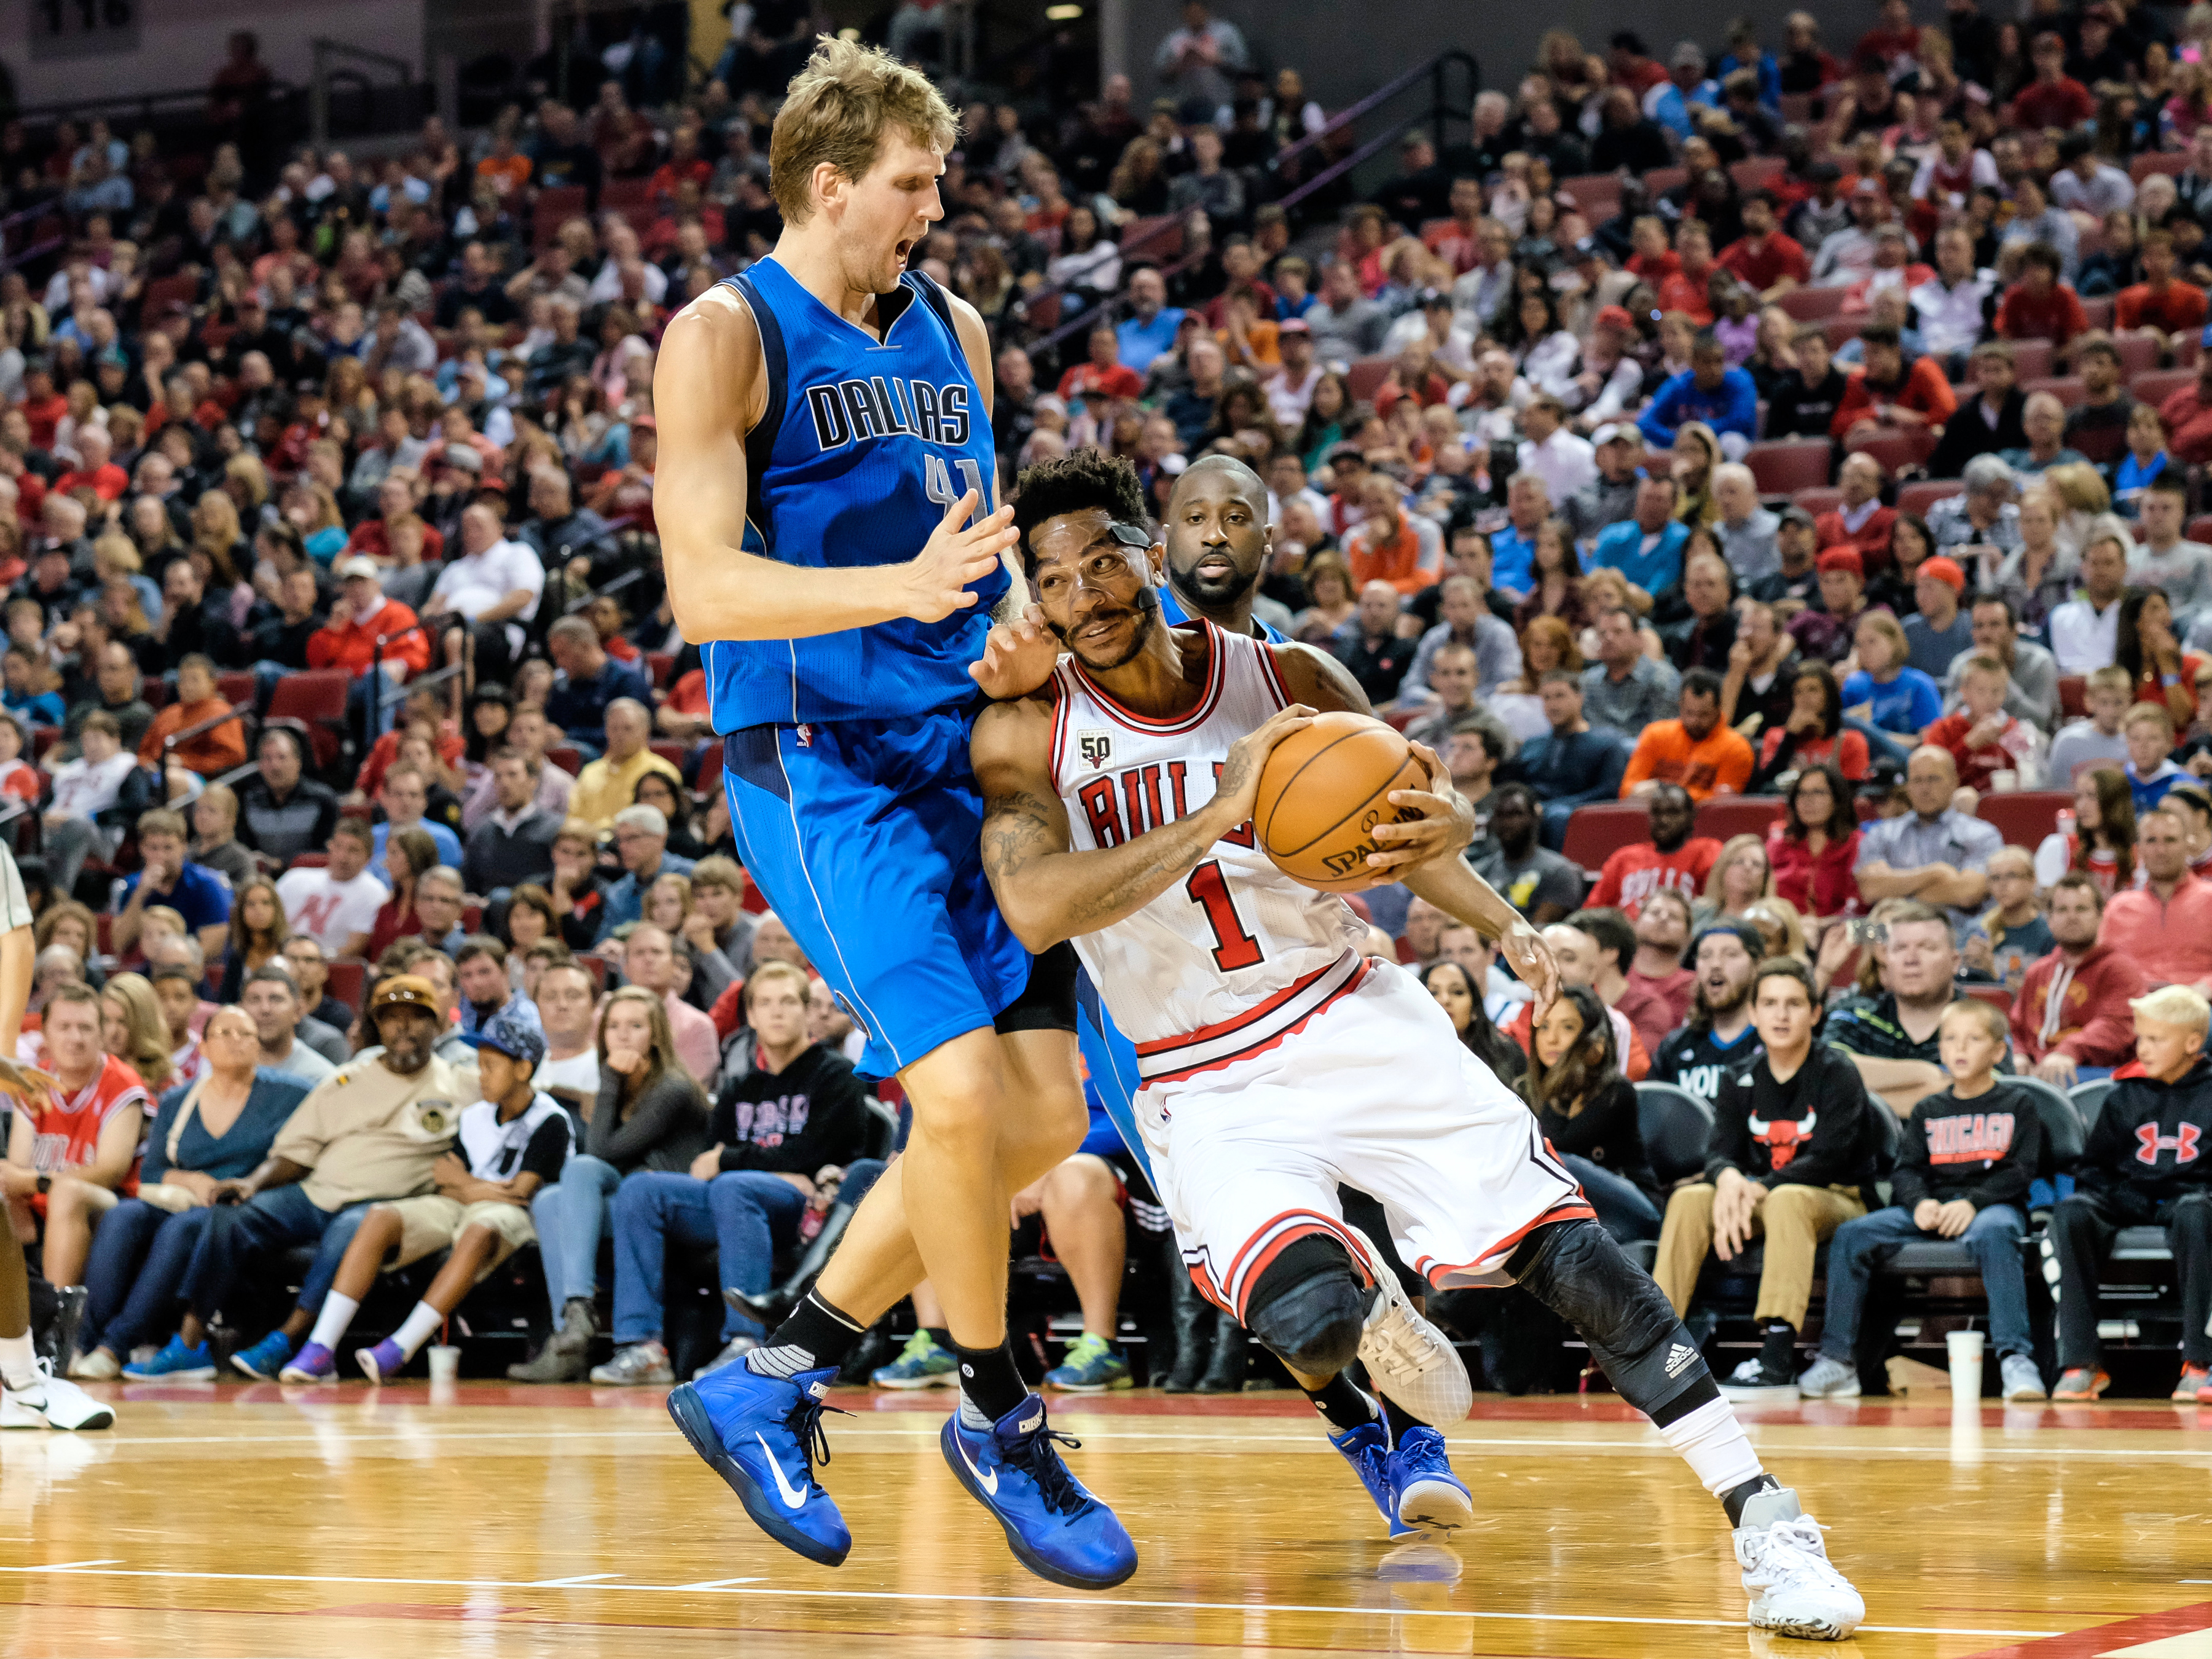 Lincoln, NE - OCTOBER 23:  Derrick Rose #1 of the Chicago Bulls drives to the basket against Dirk Nowitzki #41 of the Dallas Mavericks on October 23, 2015 at Pinnacle Bank Arena in Lincoln, Nebraska. (Photo by Eric Francis/NBAE via Getty Images)